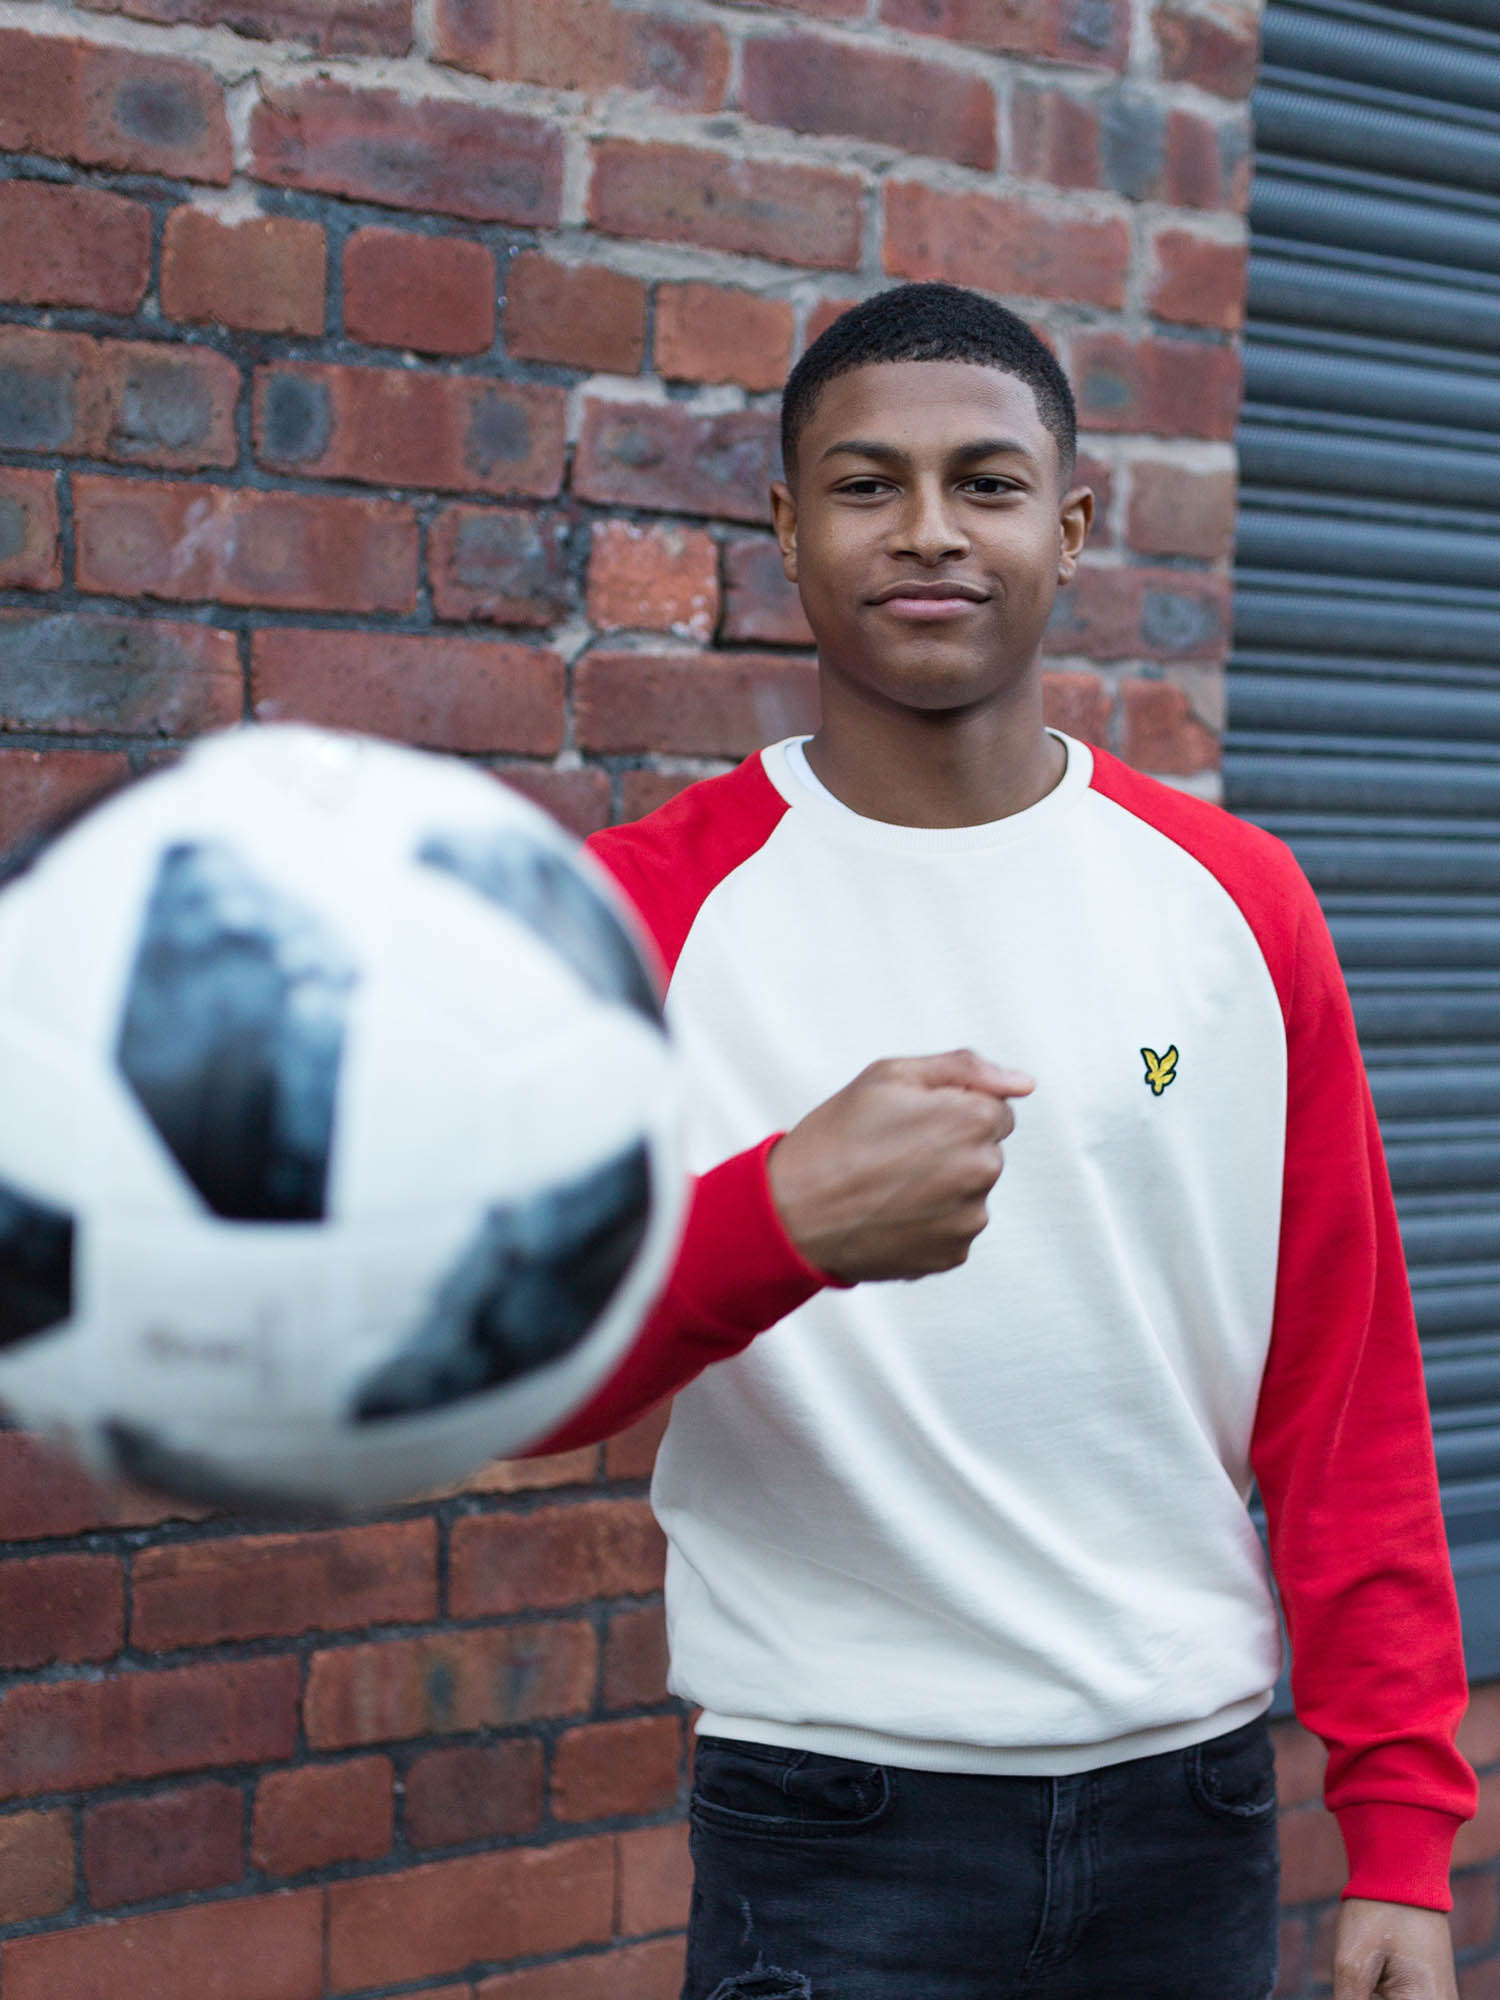 Rhian Bewster lyle and scott soccerbible_0034_Lyle & Scott x Rhian Brewster 150 AB.jpg